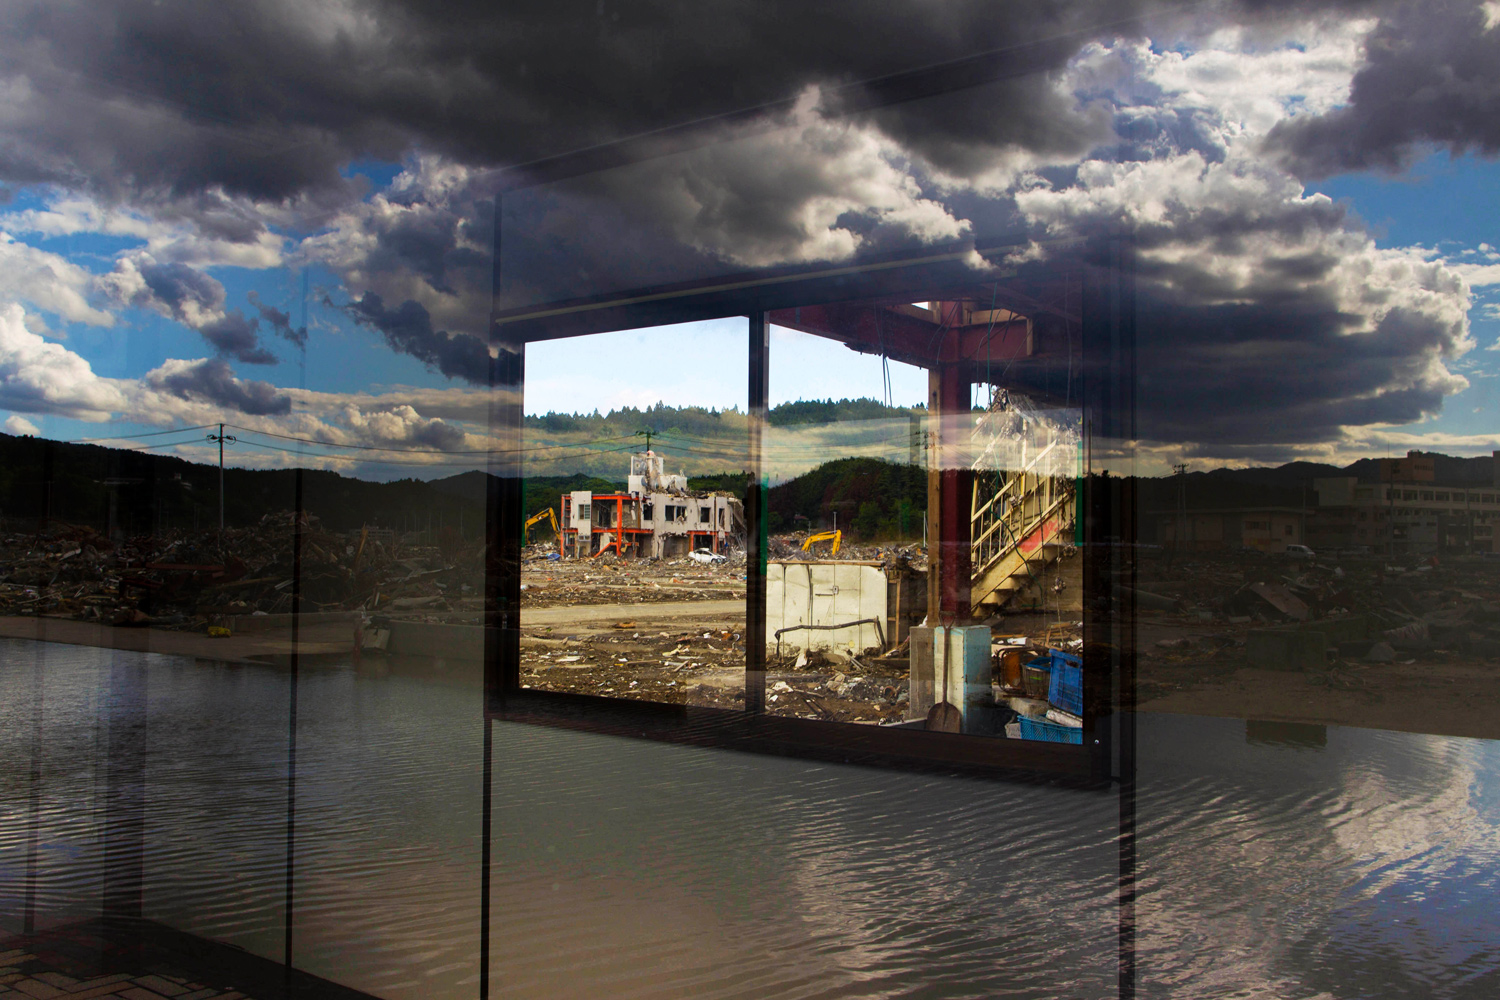 June 14, 2011. The devastated town of Minamisanriku, Japan is reflected in the windows of a newly-constructed fish market shack.